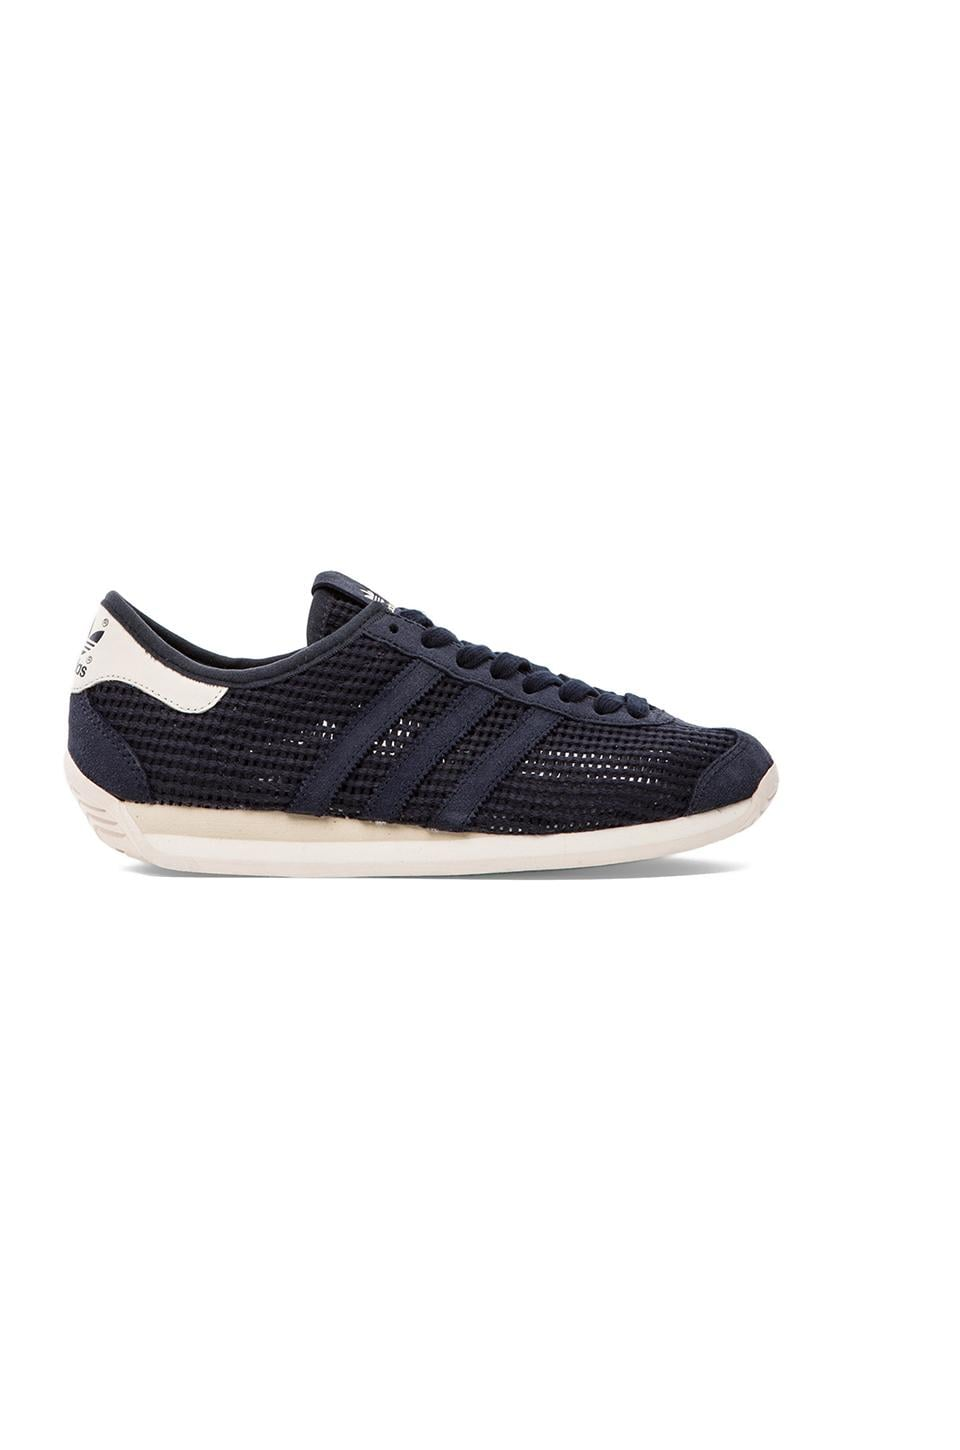 adidas Originals BLUE Country Summer in Legend Ink & Chalk